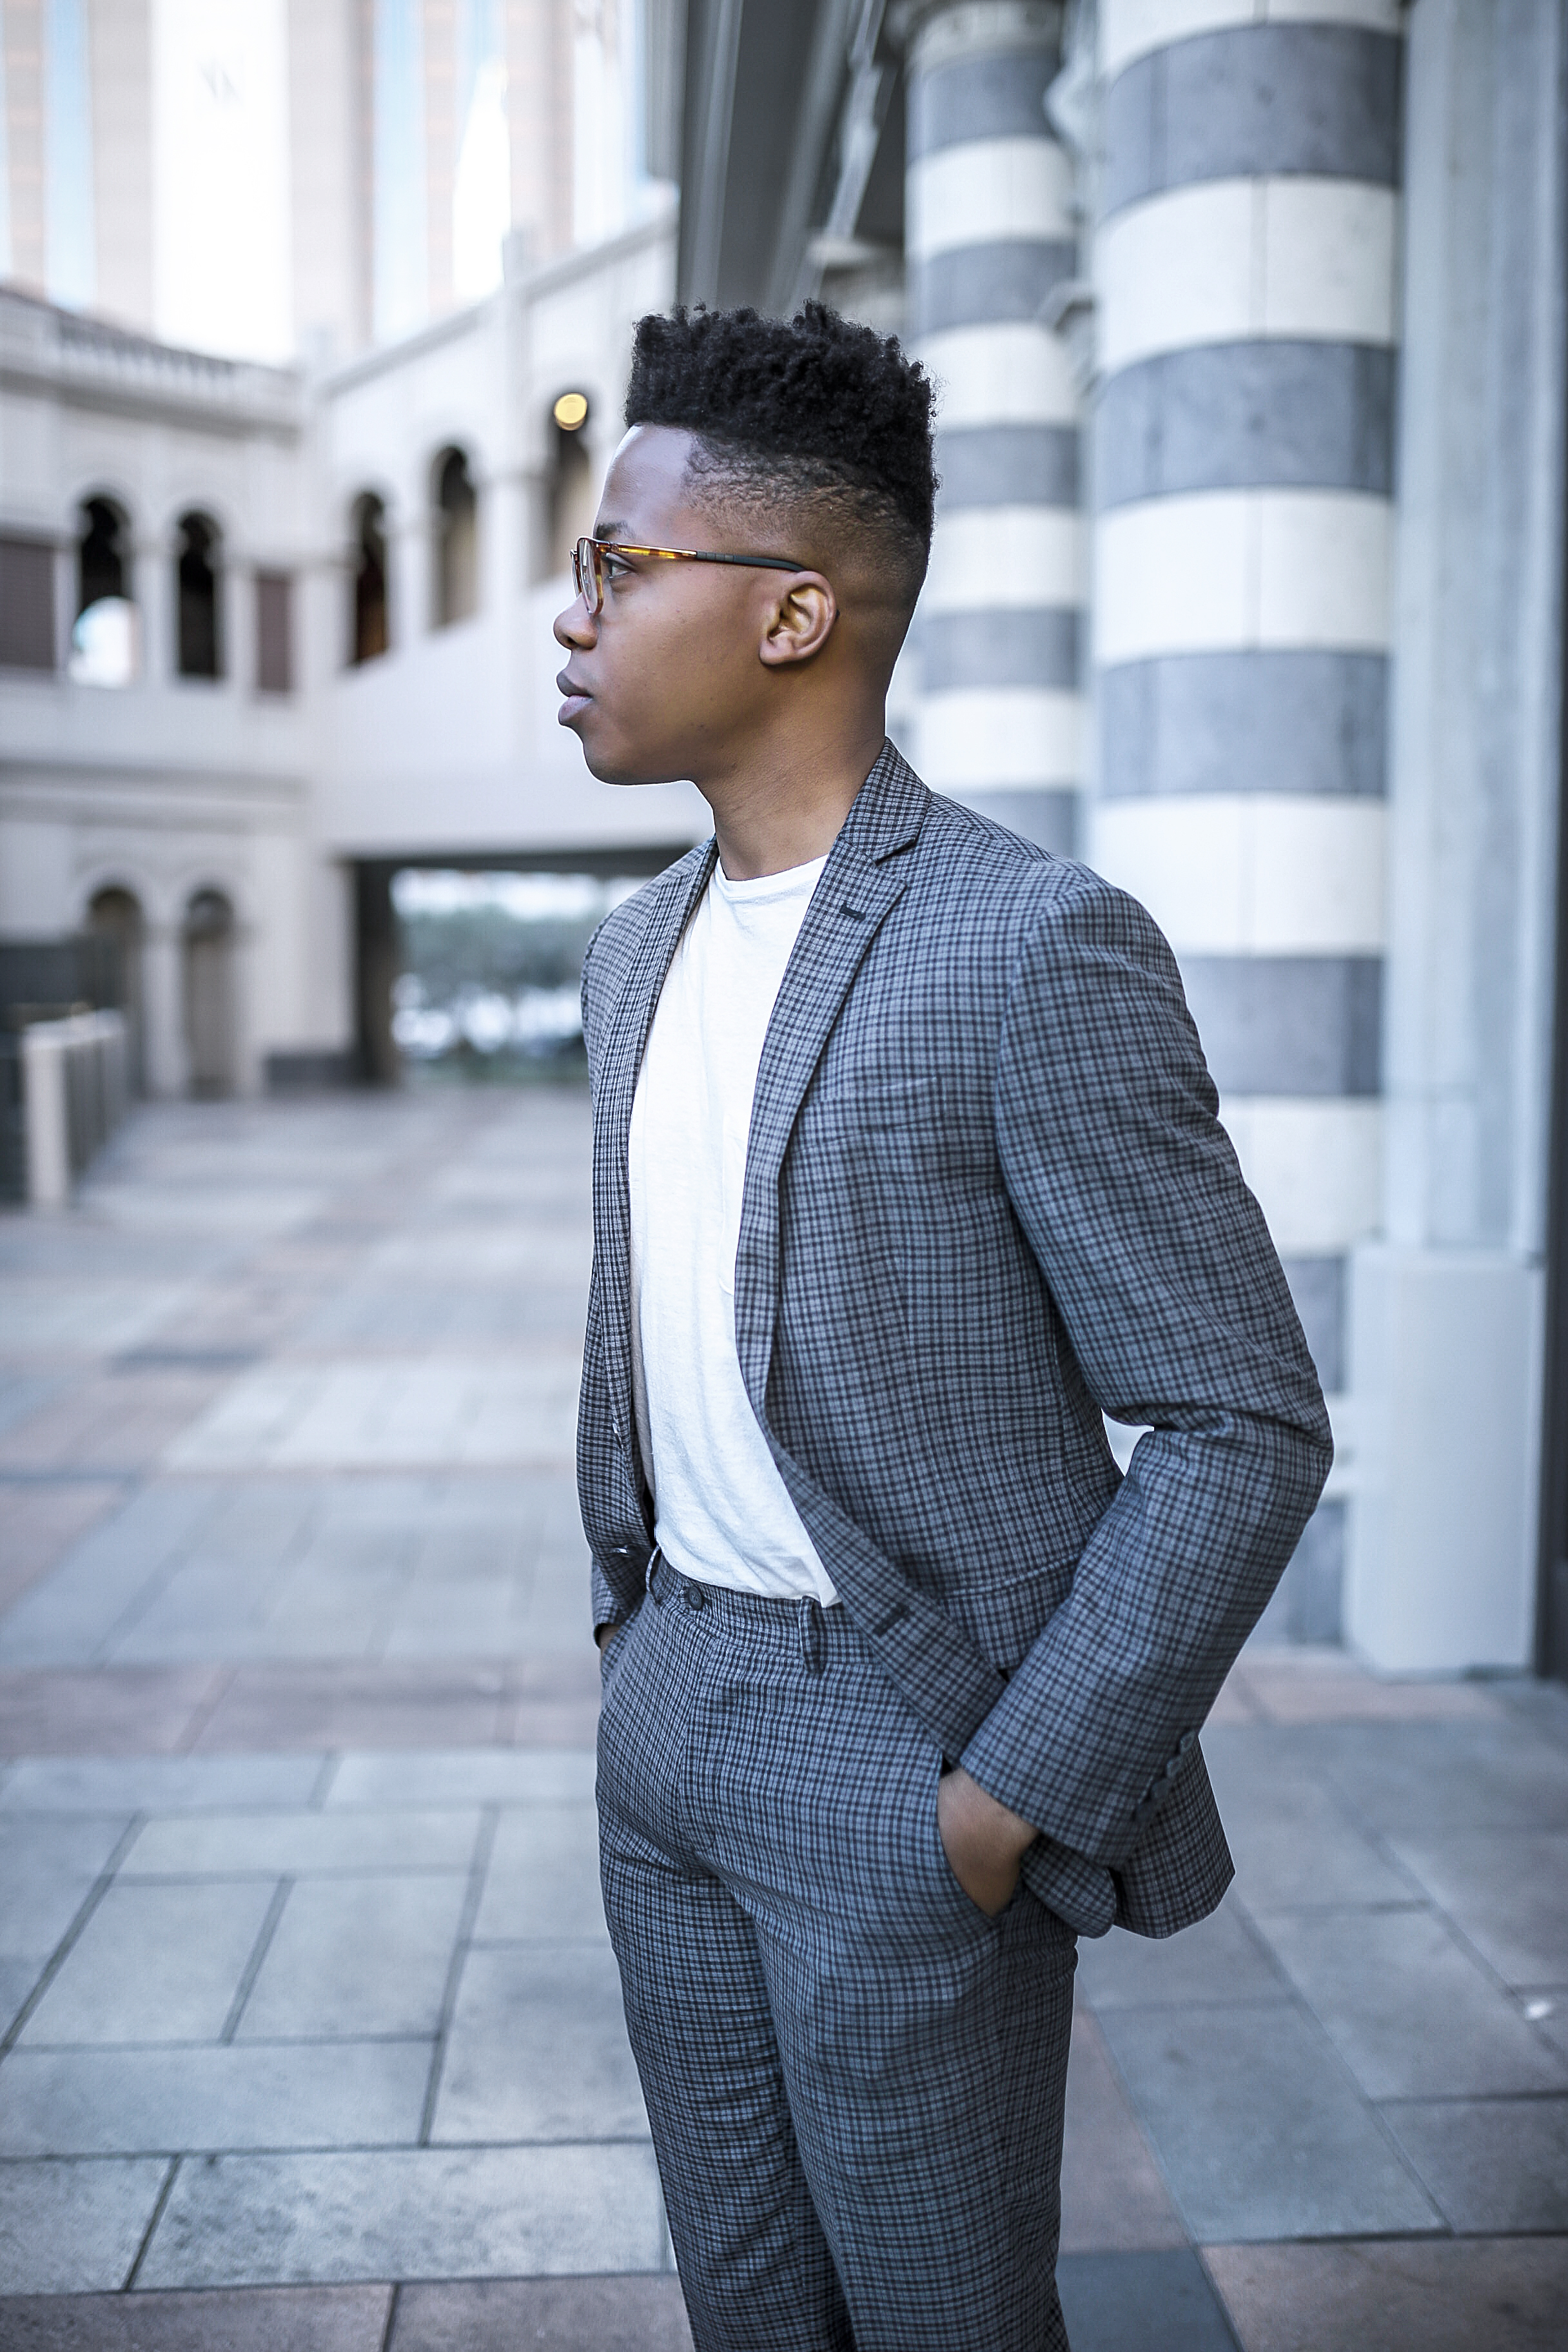 Informal - This look is for when you want to throw a suit on without feeling like you're wearing one. The key is to pair it with a plain, slim-fitted shirt. White is usually my go-to option. But also you want to make sure the suit fits properly, like this one from Bar 3, to create a slim and sharp look. A perfect look for casual outings, daily non-formal activities, and weekends.  Shop this look below:   SUIT JACKET  &  PANTS  by BAR III